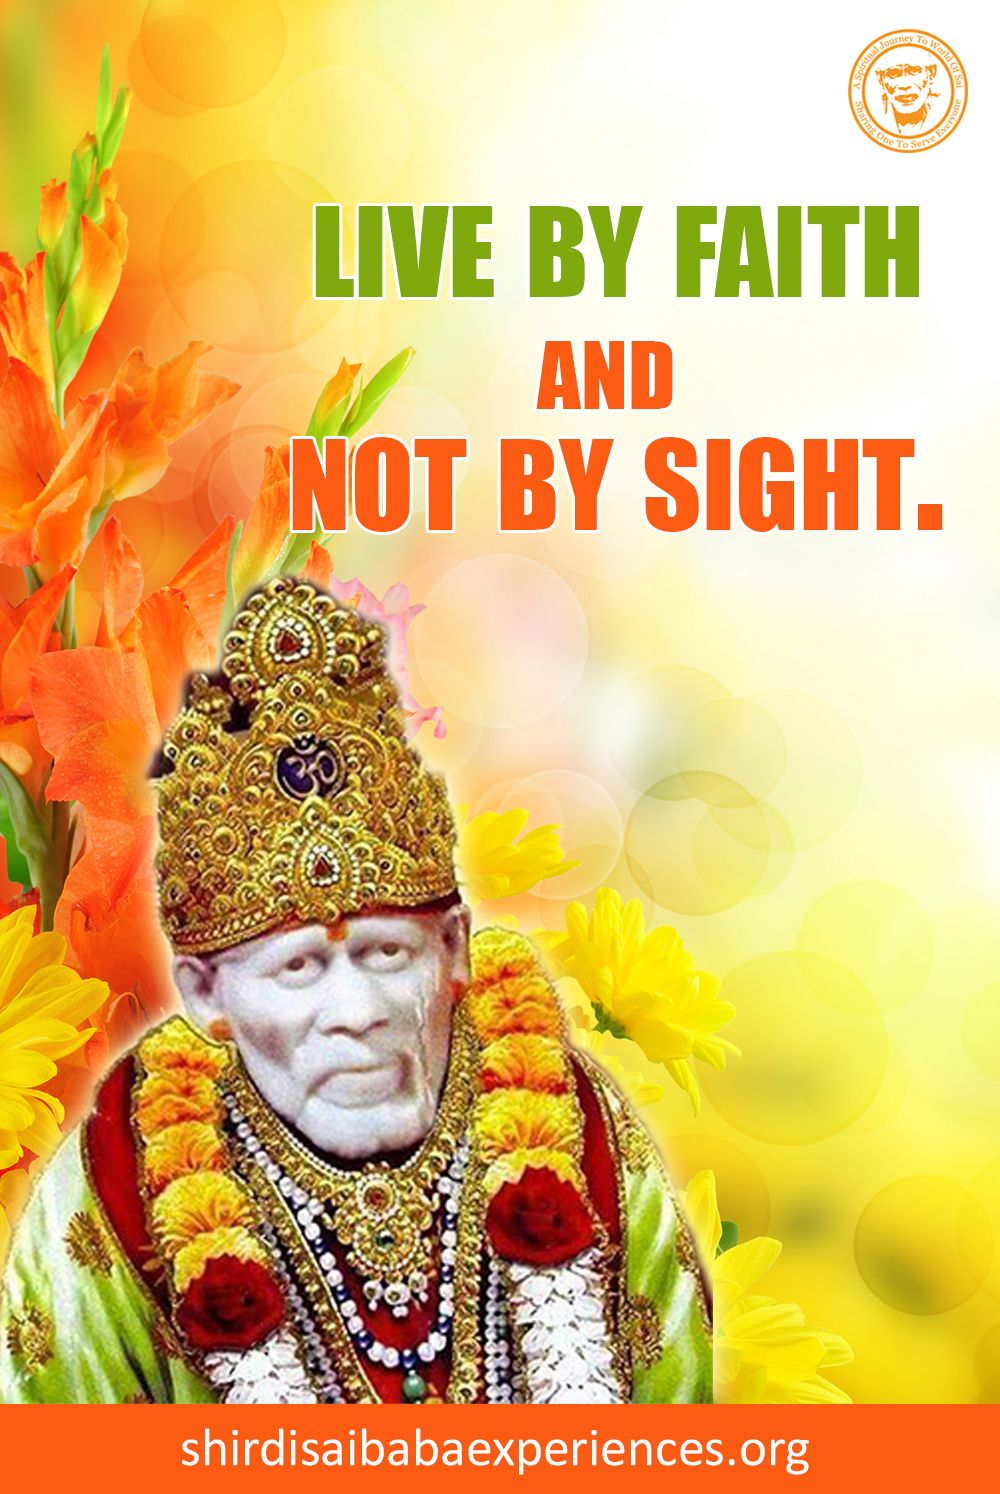 Wonderful Wallpaper Lord Sai Baba - 3ee0a18488493e0a9a0e350f13d68f0d  Photograph_511434.jpg